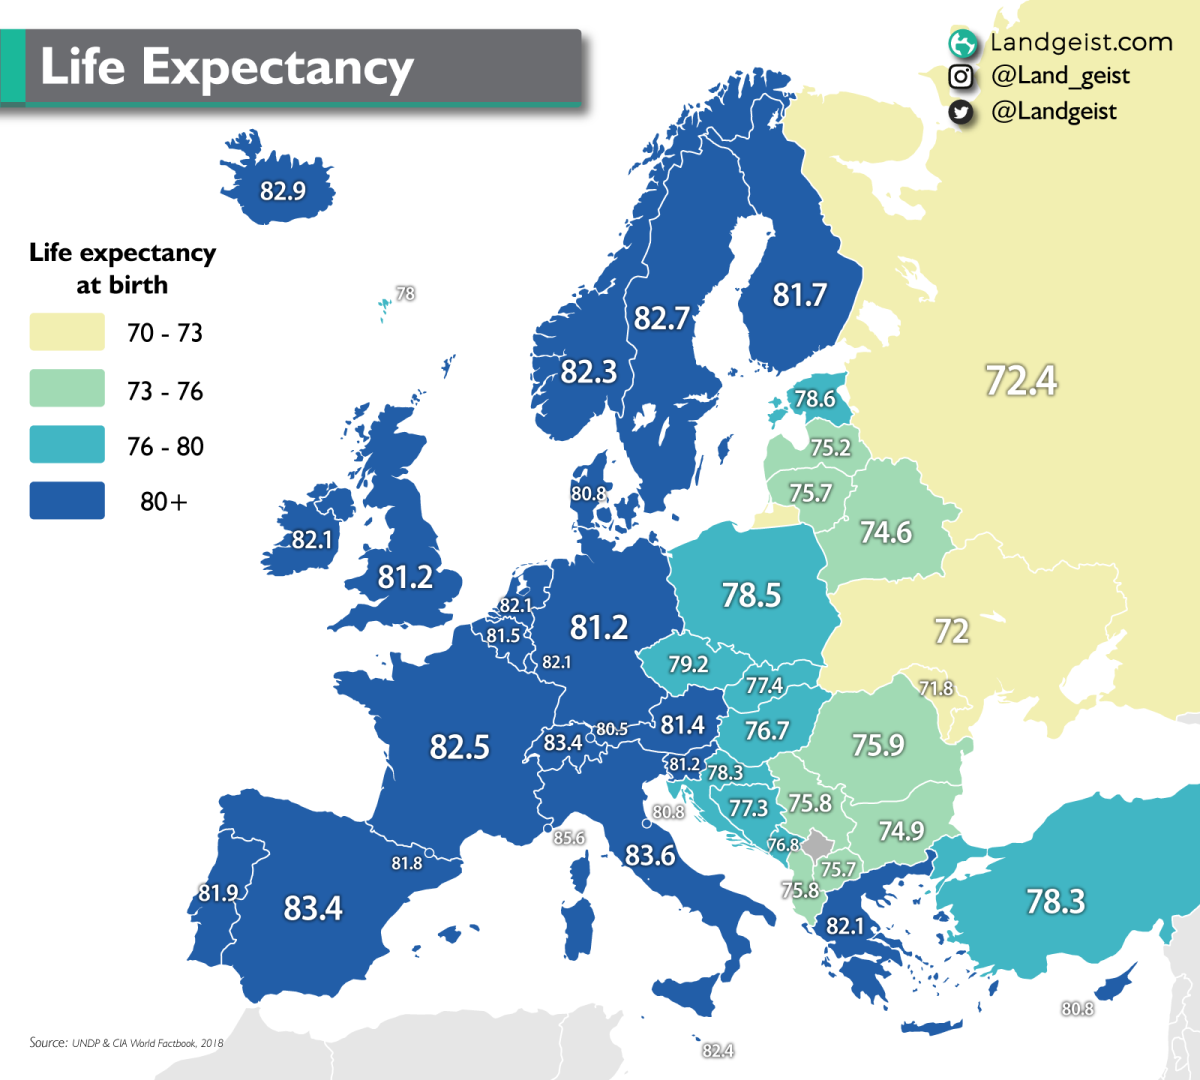 Map of the life expectancy at birth per country in Europe.